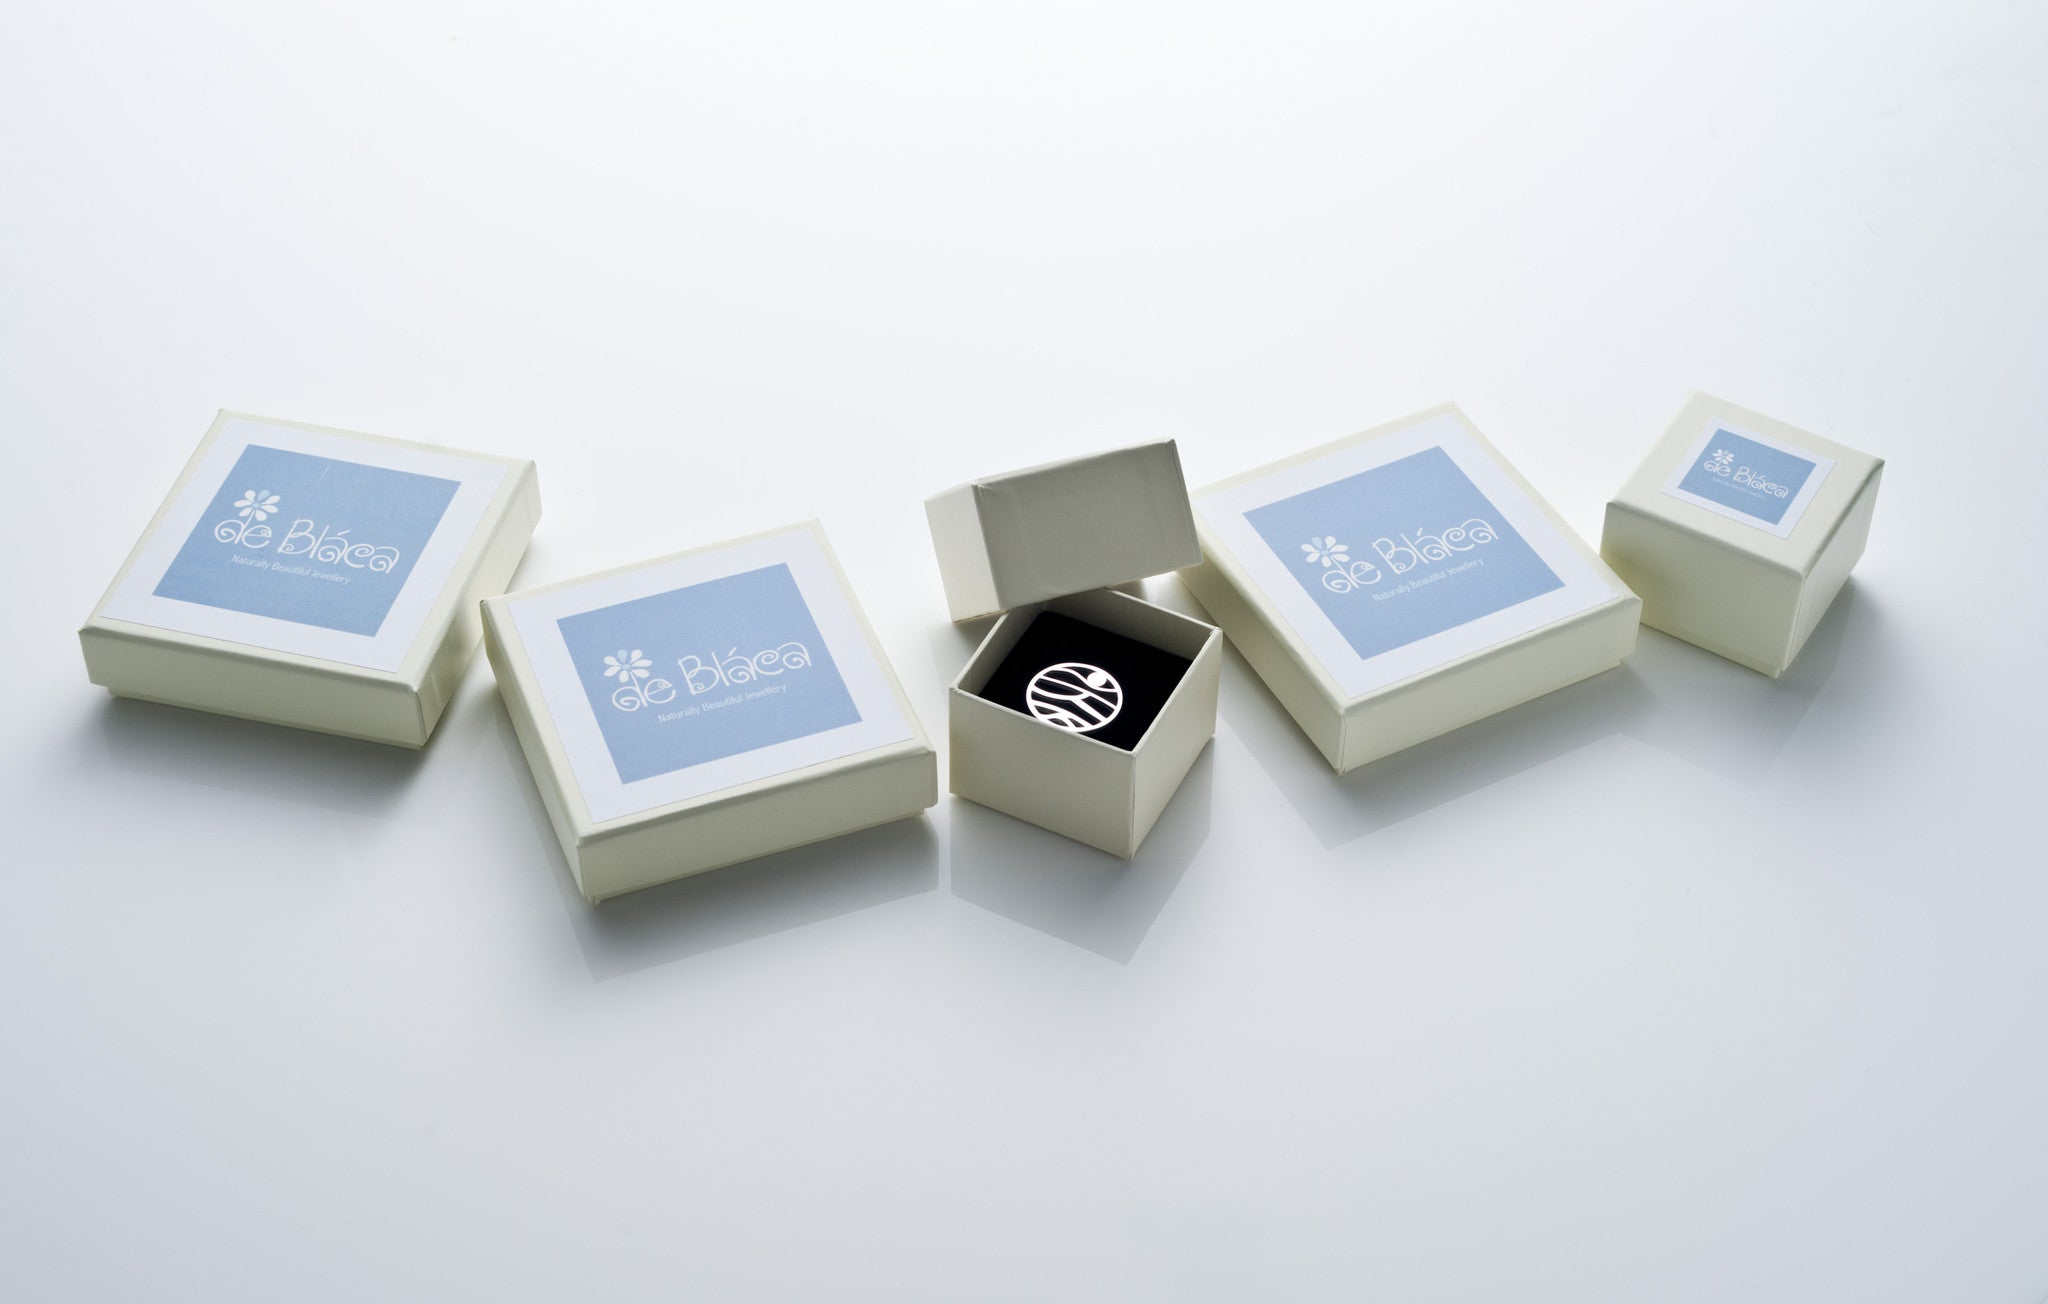 deblaca jewellery boxes